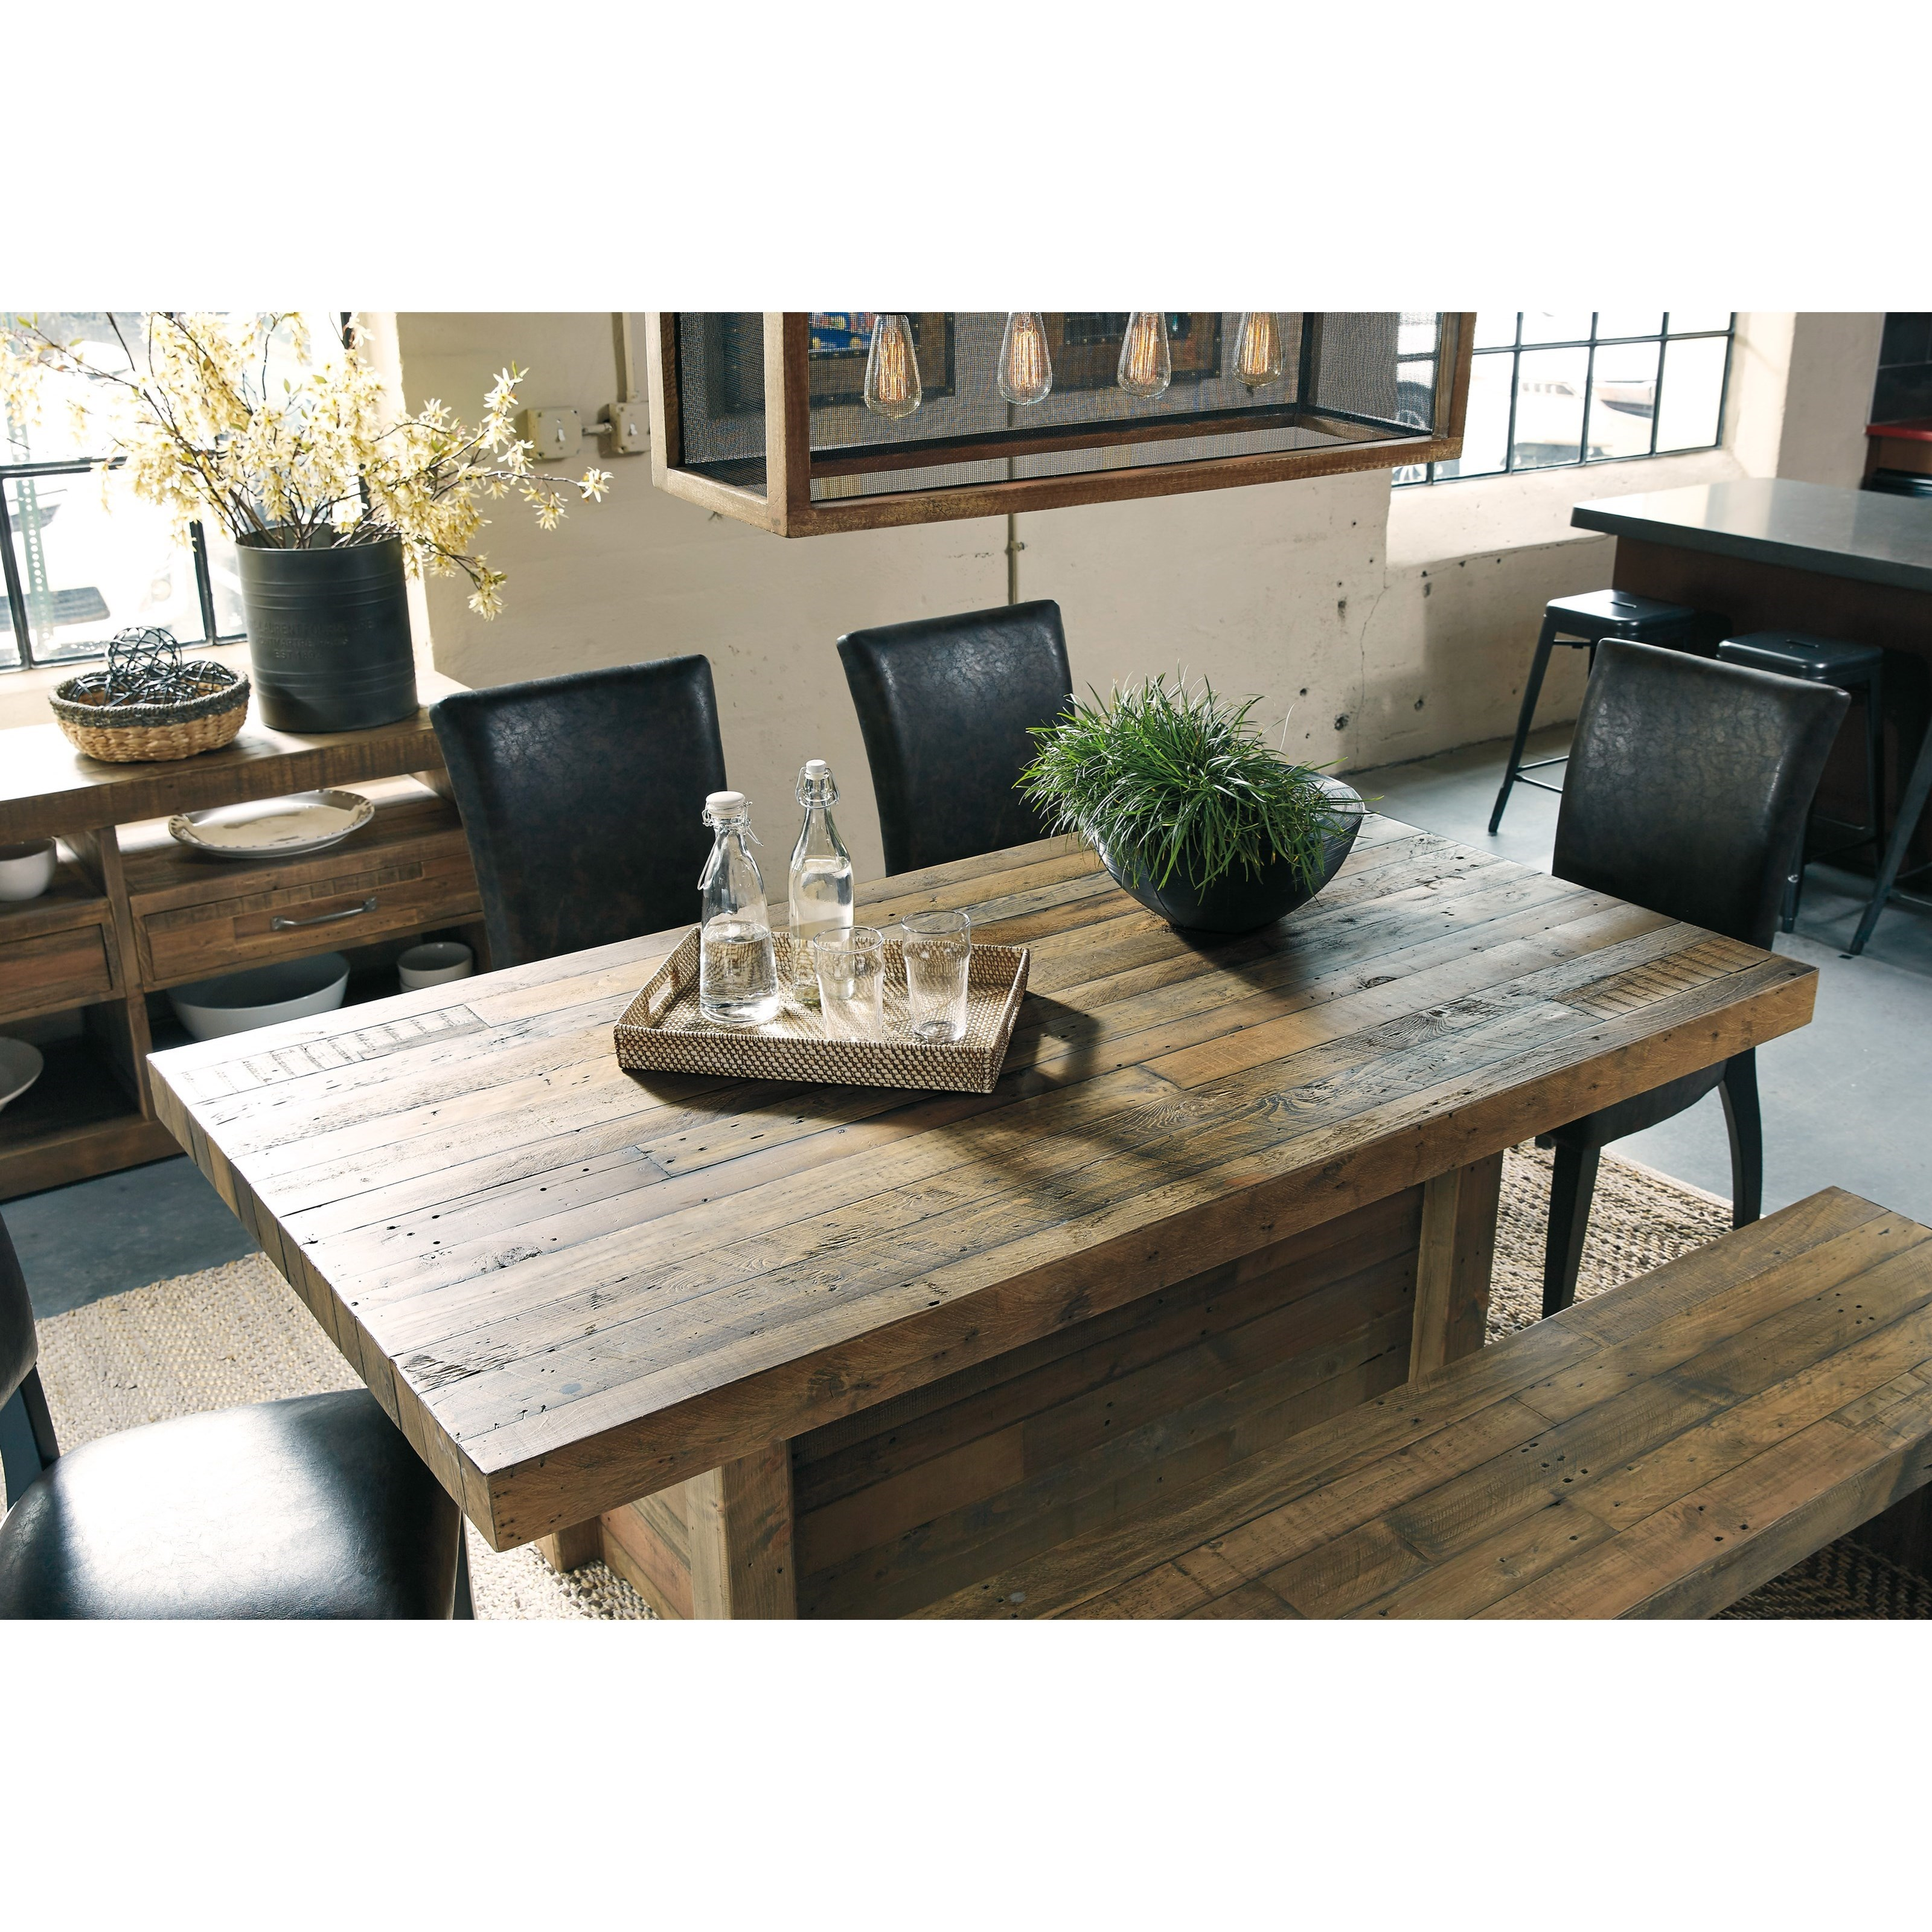 Frisco Modern Solid Wood Rectangular Rustic Dining Room Table: Solid Wood Reclaimed Pine Rectangular Dining Room Table By